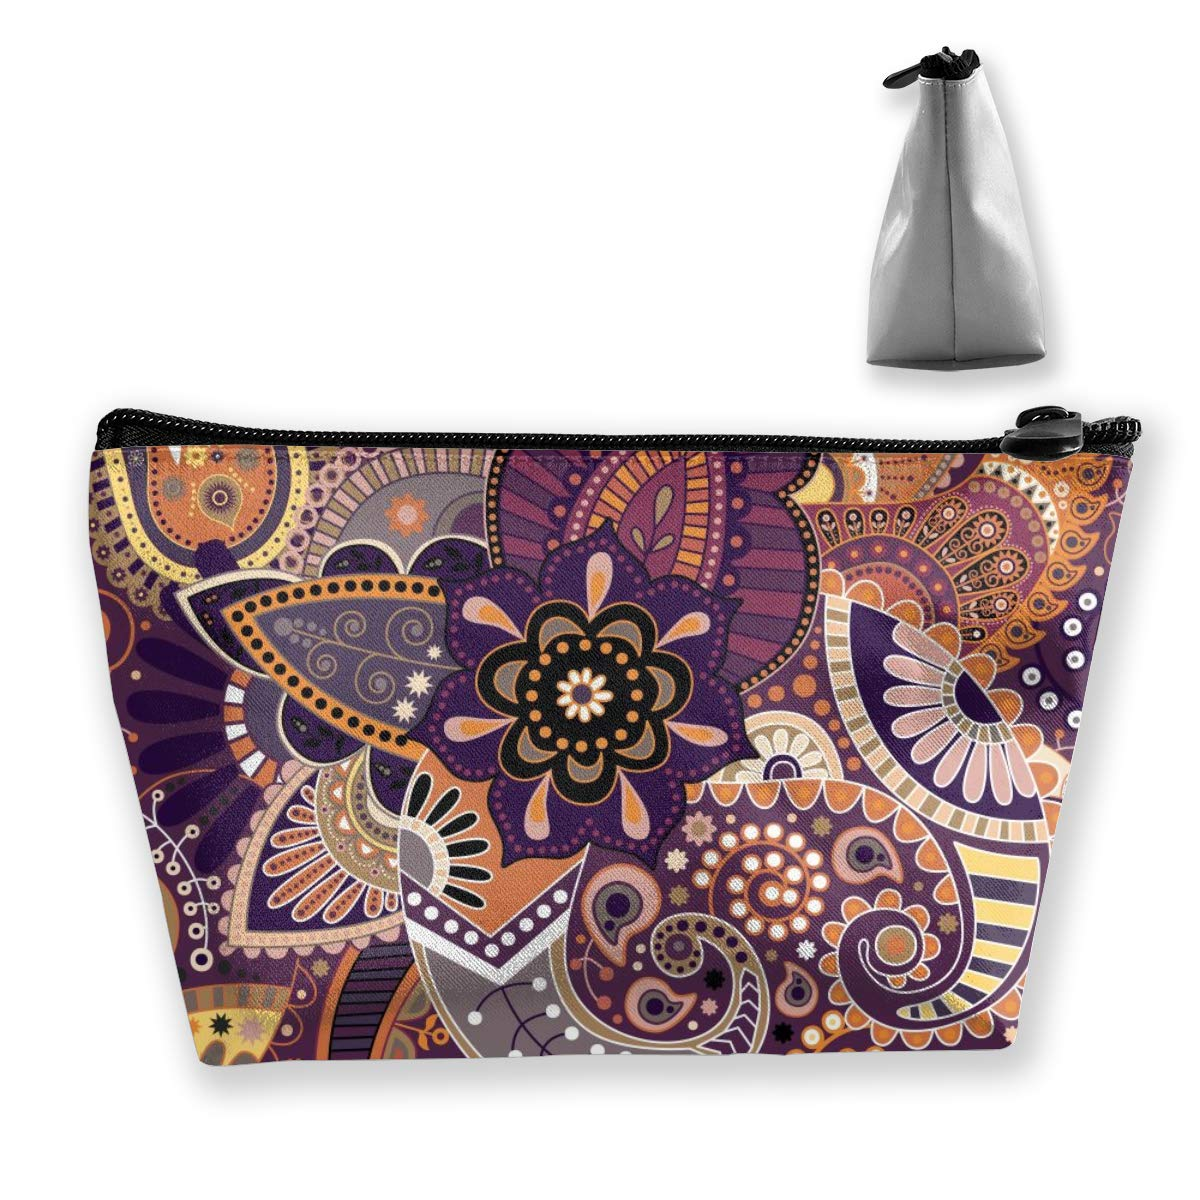 Premium Trapezoidal Storage Organizer Bag Portable Toiletry Bag Make Up Cosmetic Pouch Travel Toiletry Clutch Bag With Zipper (Paisley Floral Indian Mandala)